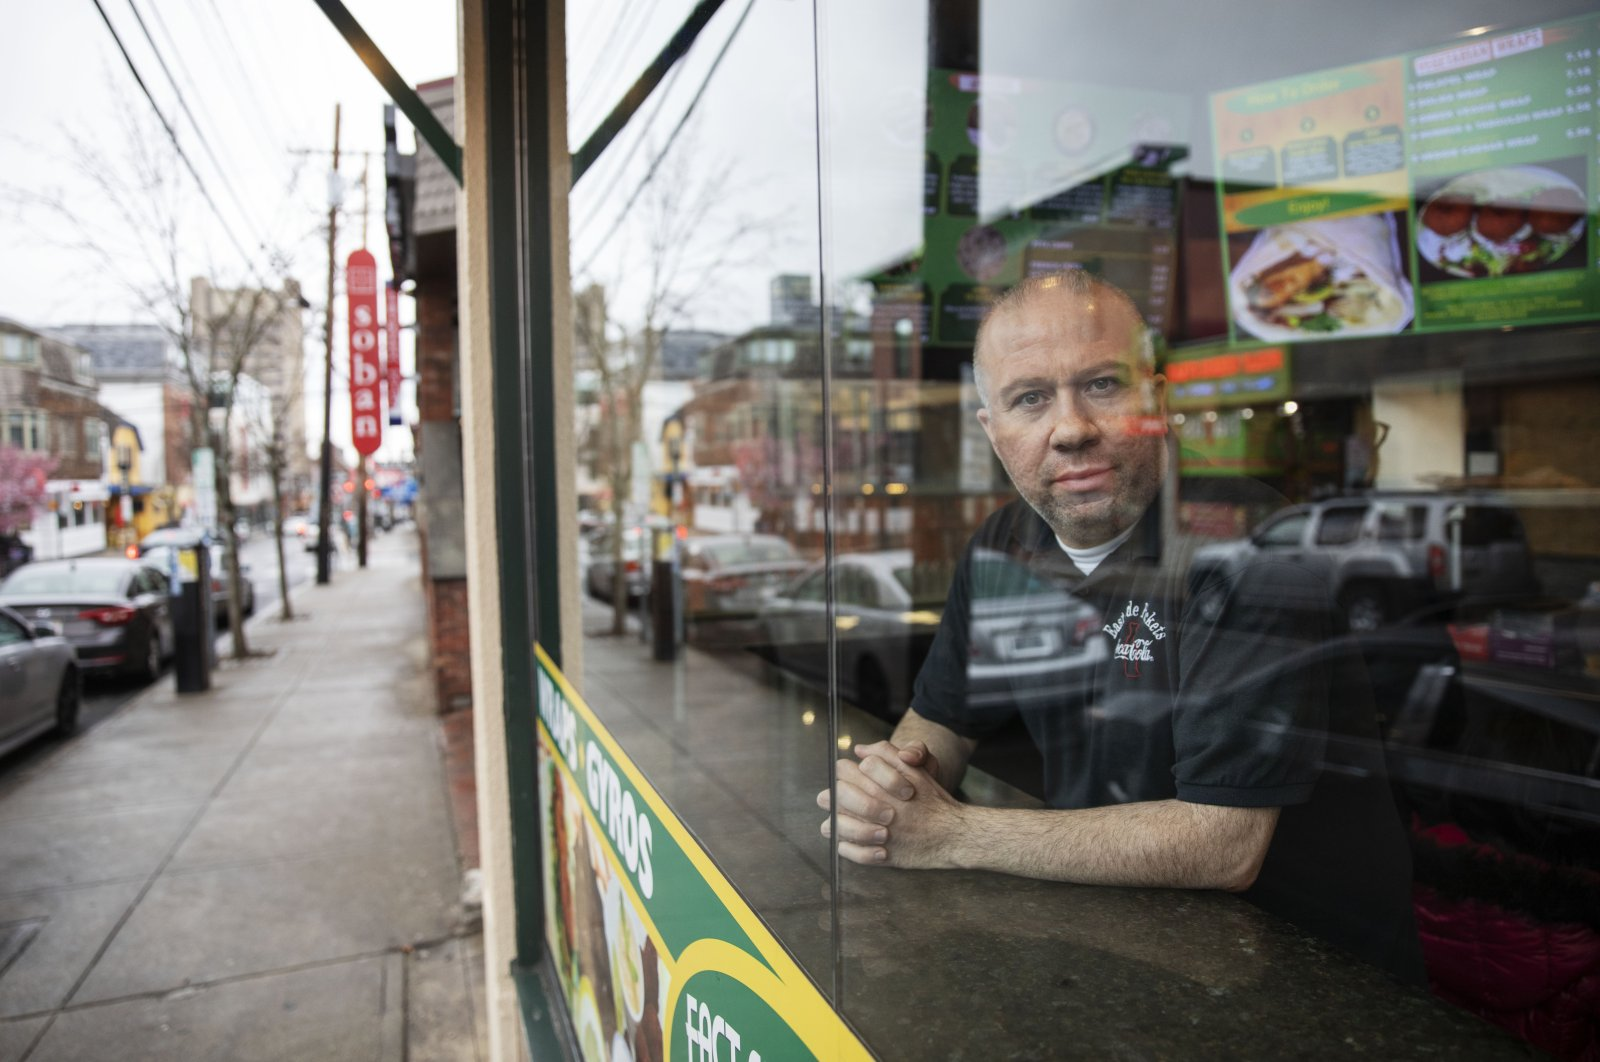 Paul Boutros, the owner of East Side Pockets, a small restaurant near Brown University, looks out onto an empty street since students were sent home two weeks ago, Wednesday, March 25, 2020, in Providence, R.I. (AP Photo)